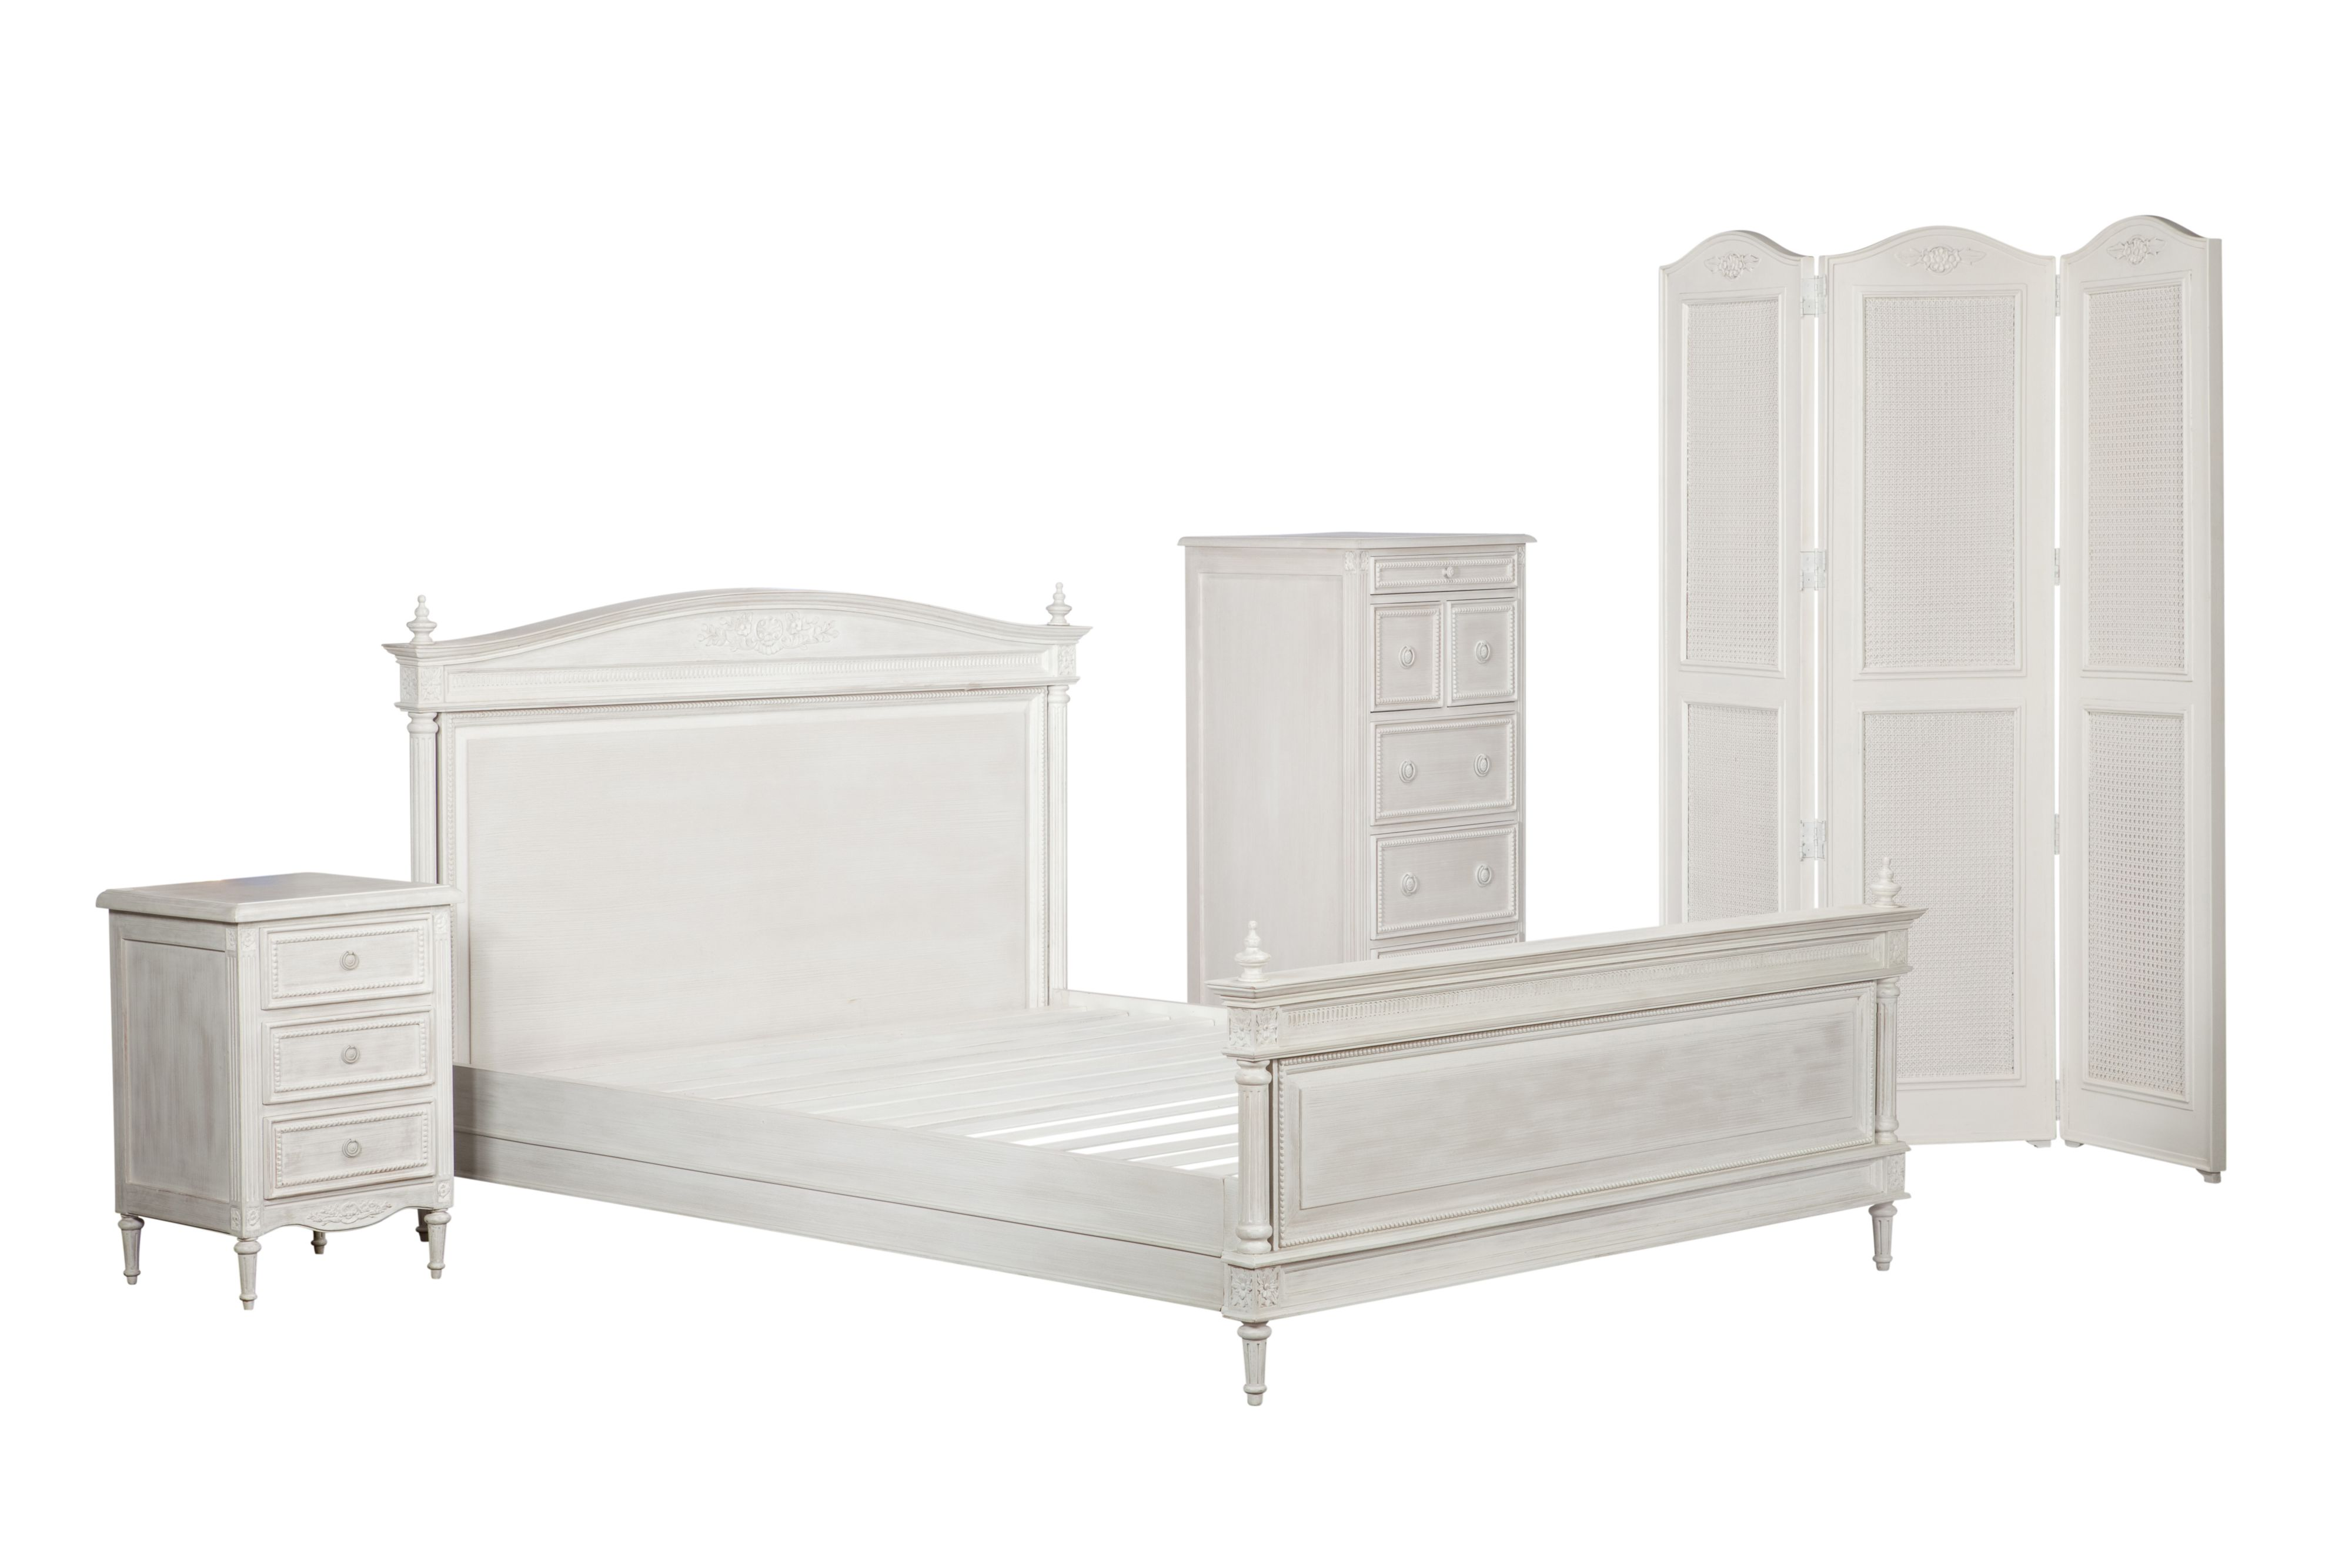 Heather double bedstead